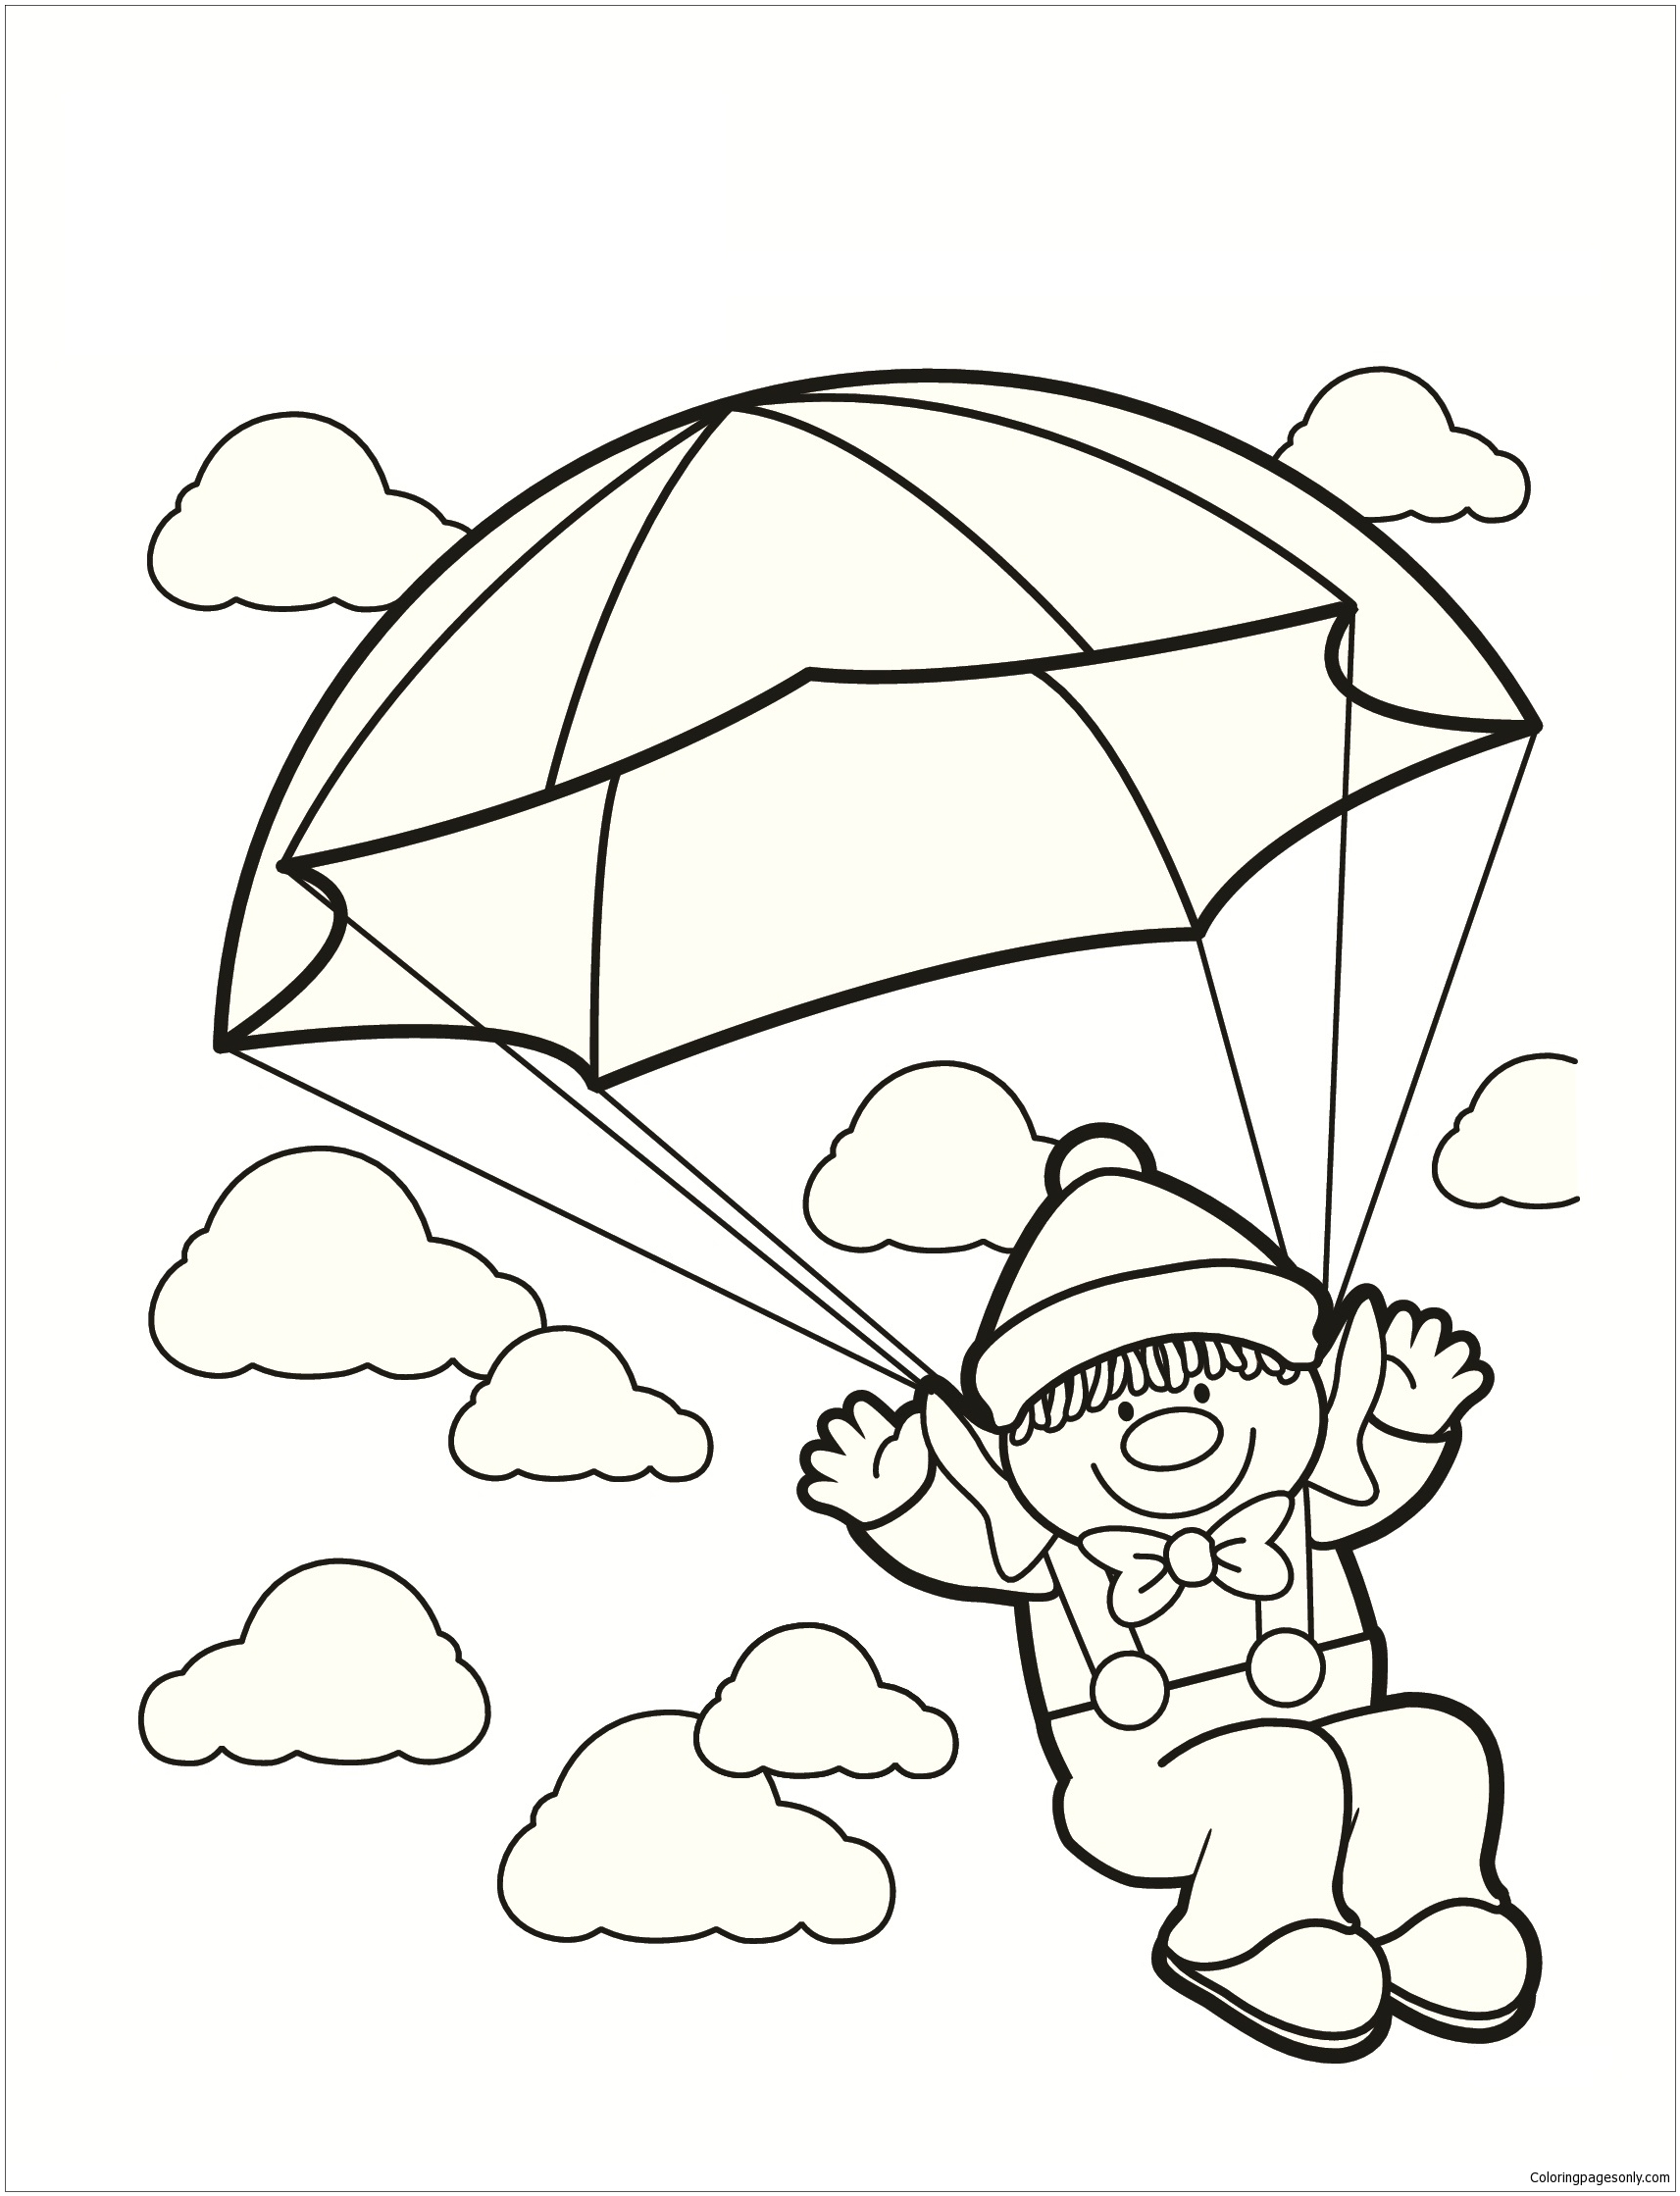 1713x2239 Inspiration Elf On The Shelf Coloring Page With Awesome Girl Elf